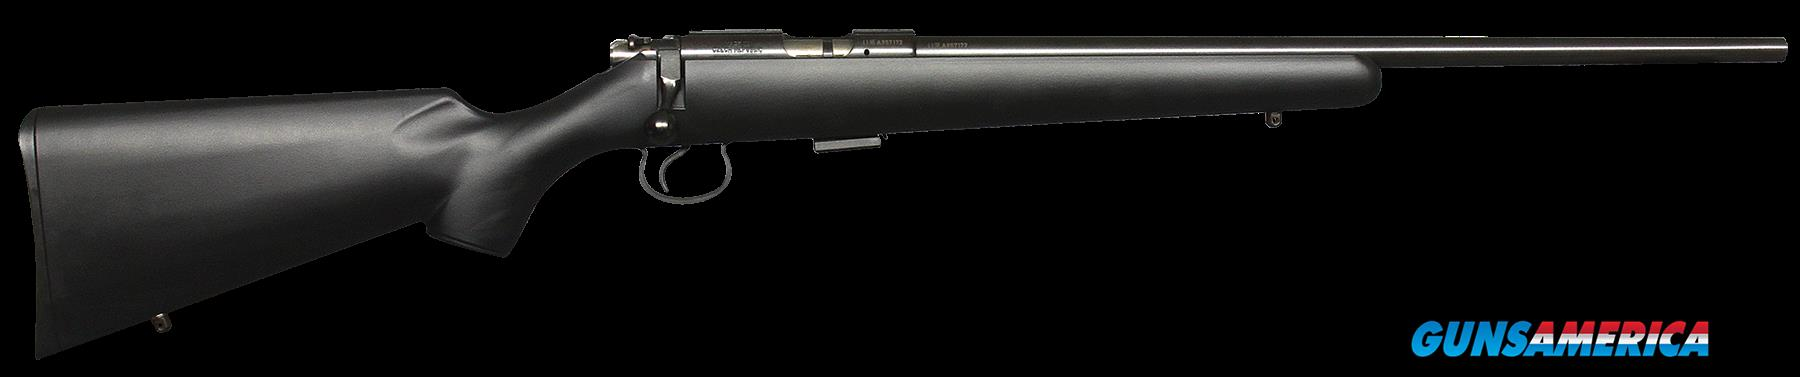 "CZ 02112 CZ 455 American Synthetic Bolt 22 LR 20.5"" 5+1 Synthetic Black Stk Stainless  Guns > Rifles > C Misc Rifles"